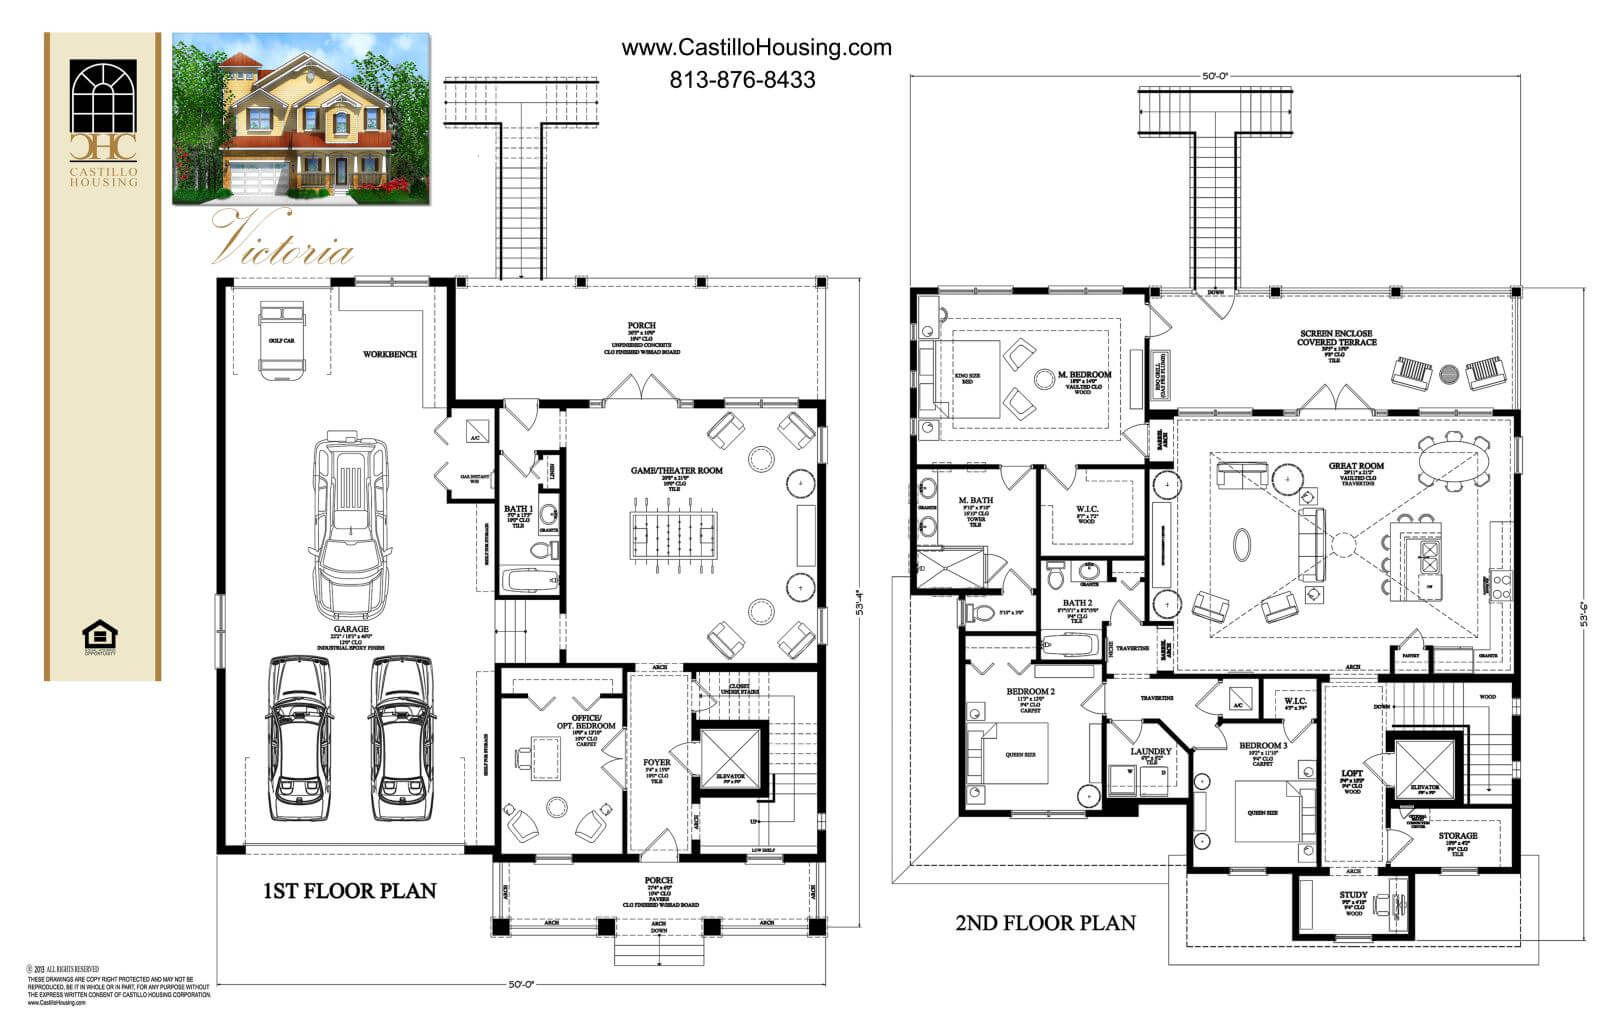 Floor Plans,2,501 SQ FT TO 3,000 SQ FT,1049